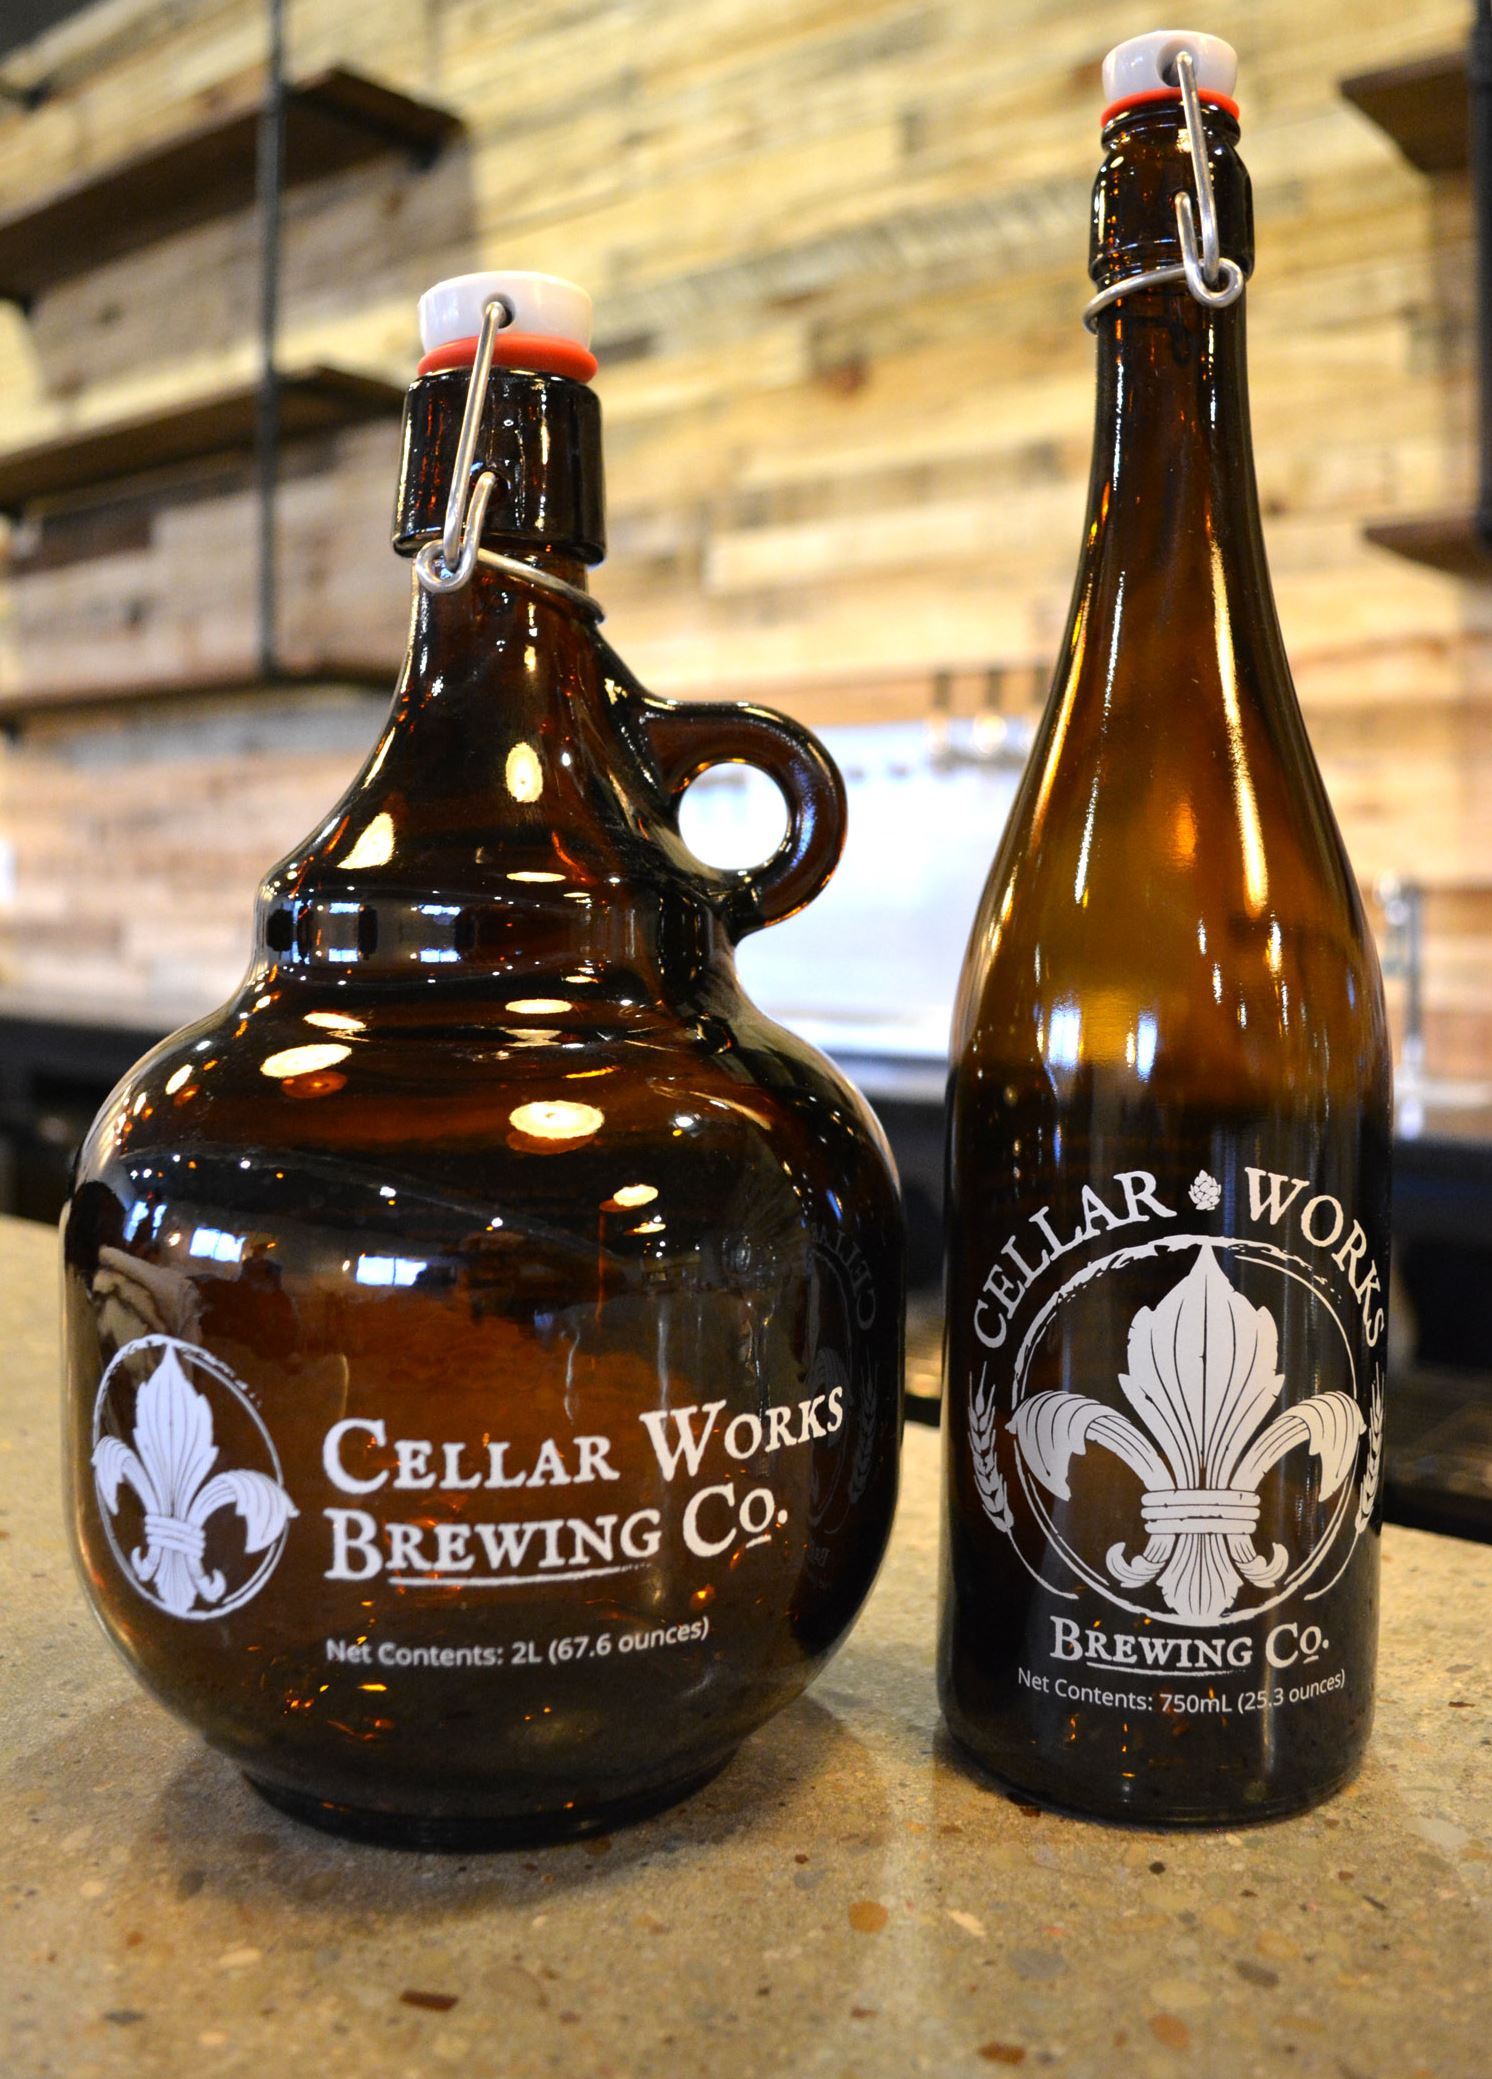 cellar works brewing 7-6 Glassware at Cellar Works Brewing Co., which is opening with a private party on March 4 near Sarver in Buffalo Township, Butler County.